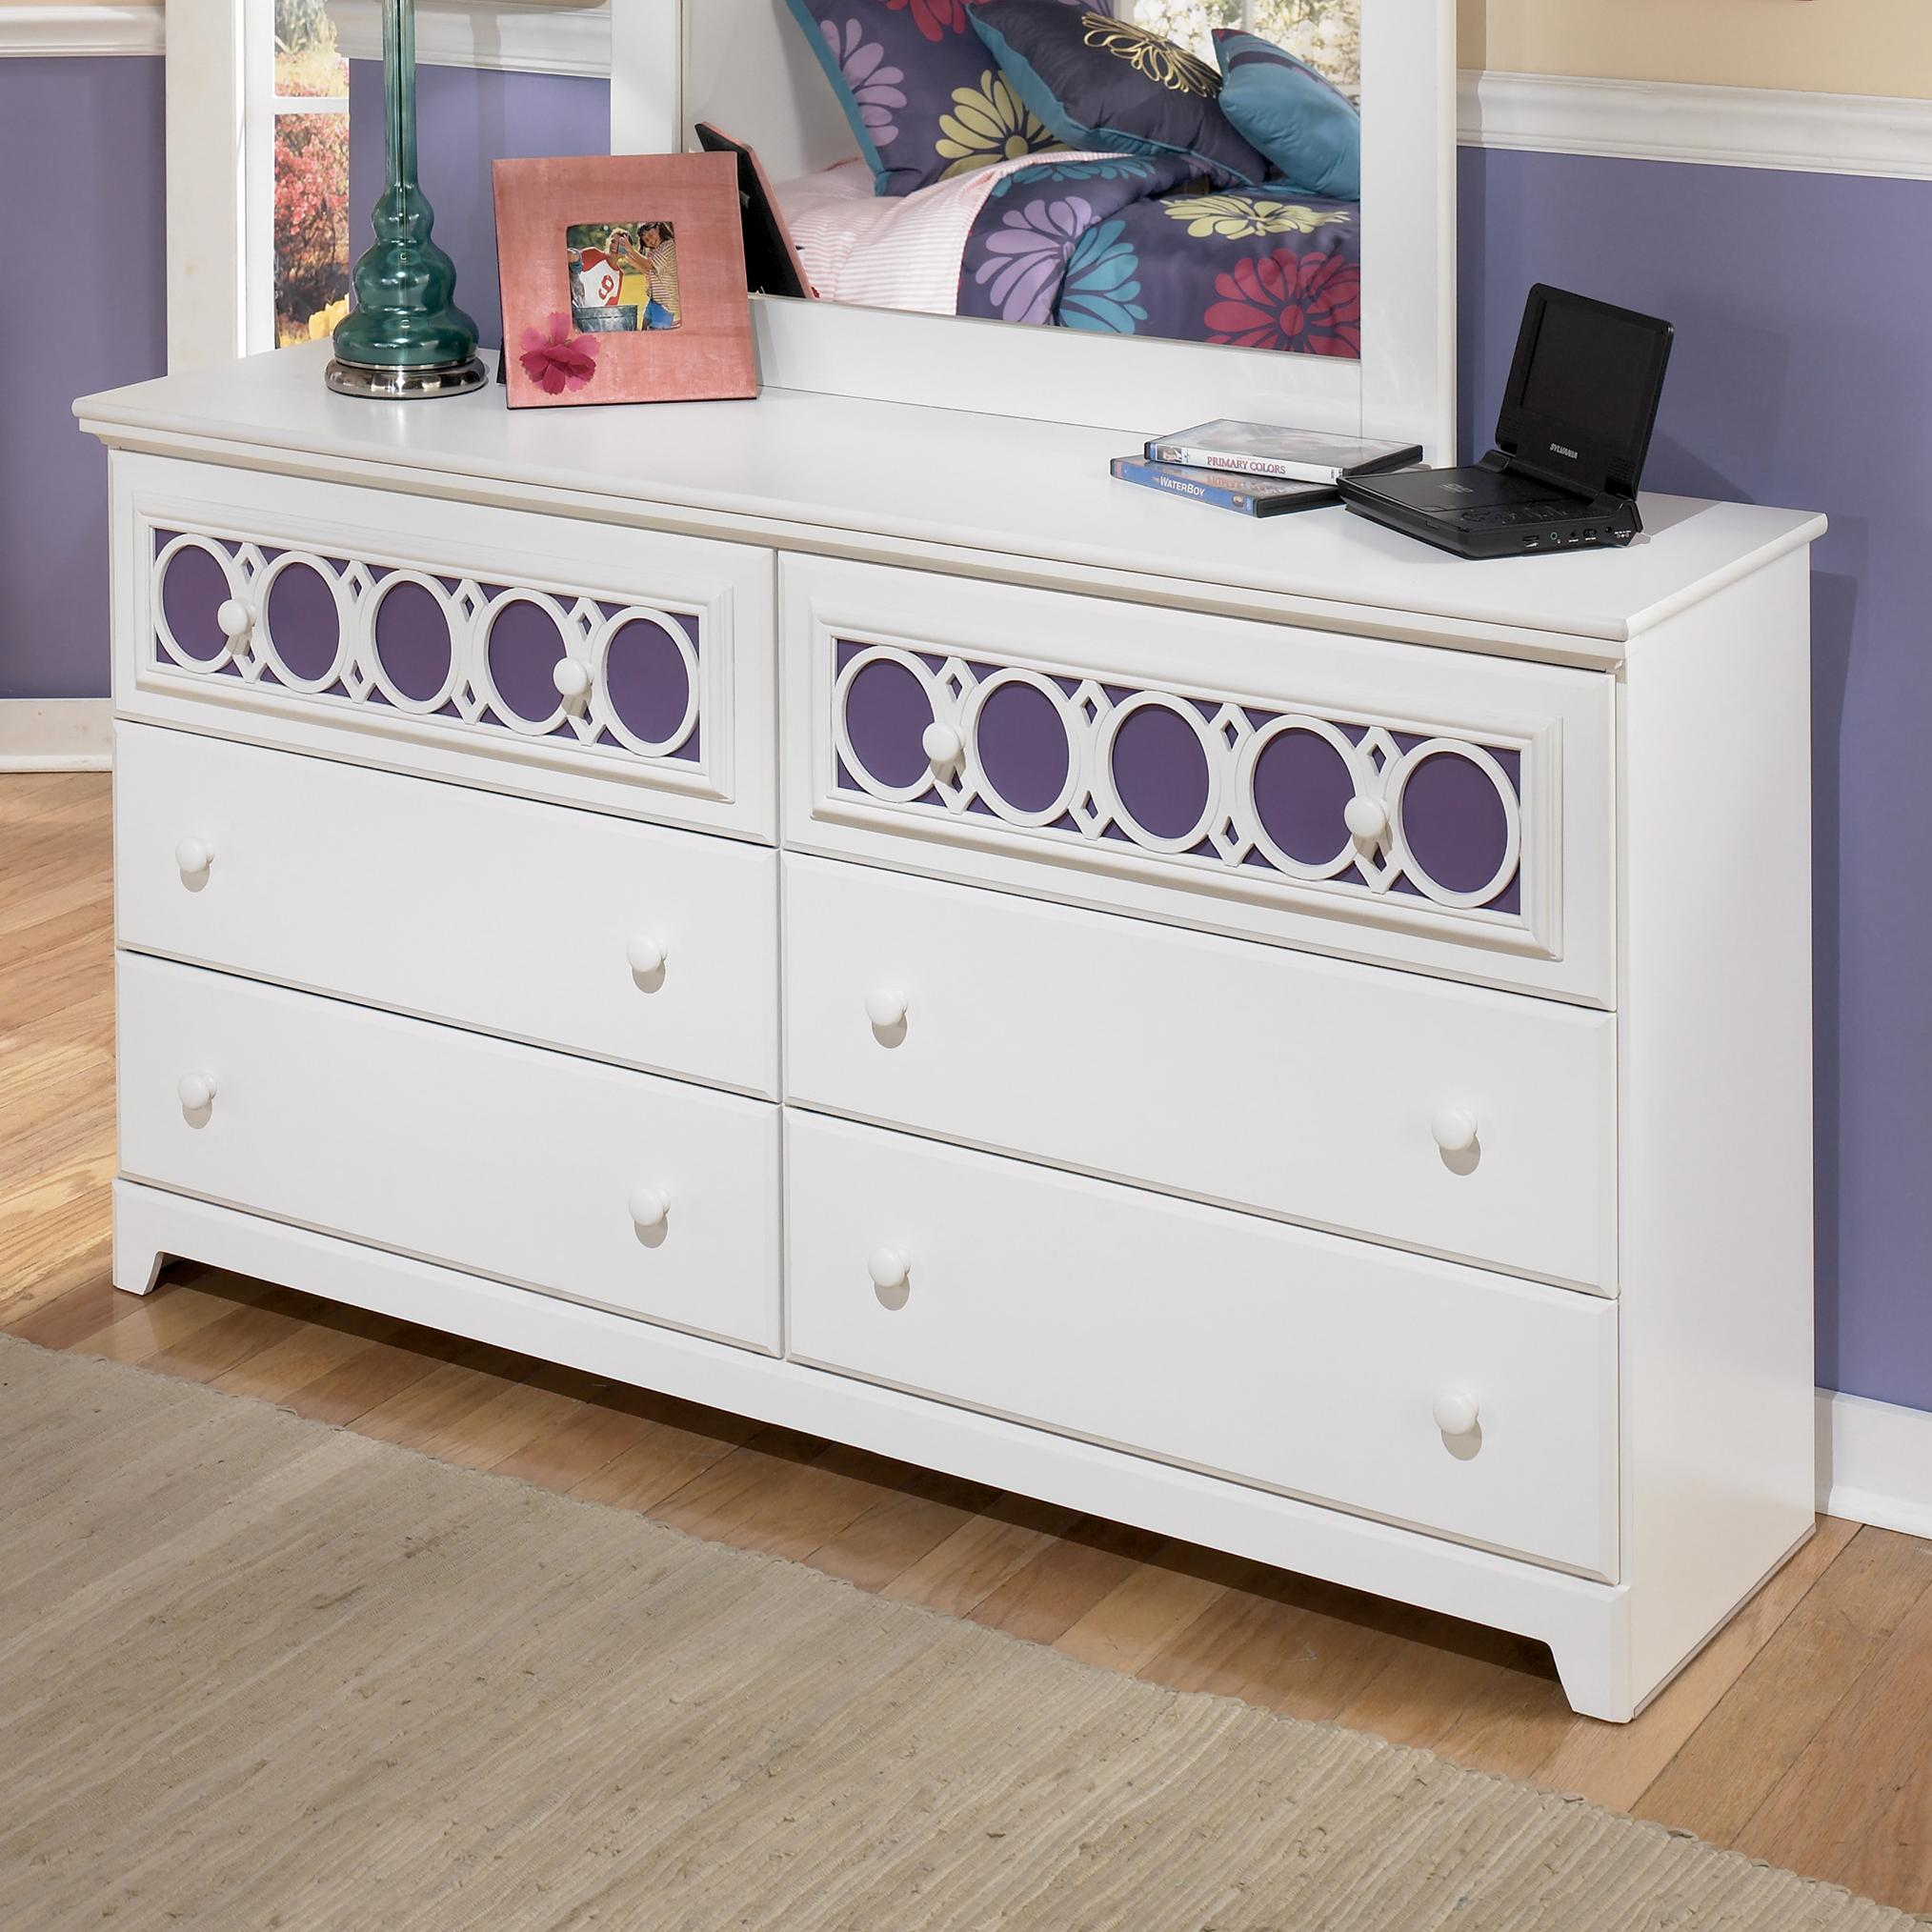 6 Drawer Dresser With Customizable Color Panels By